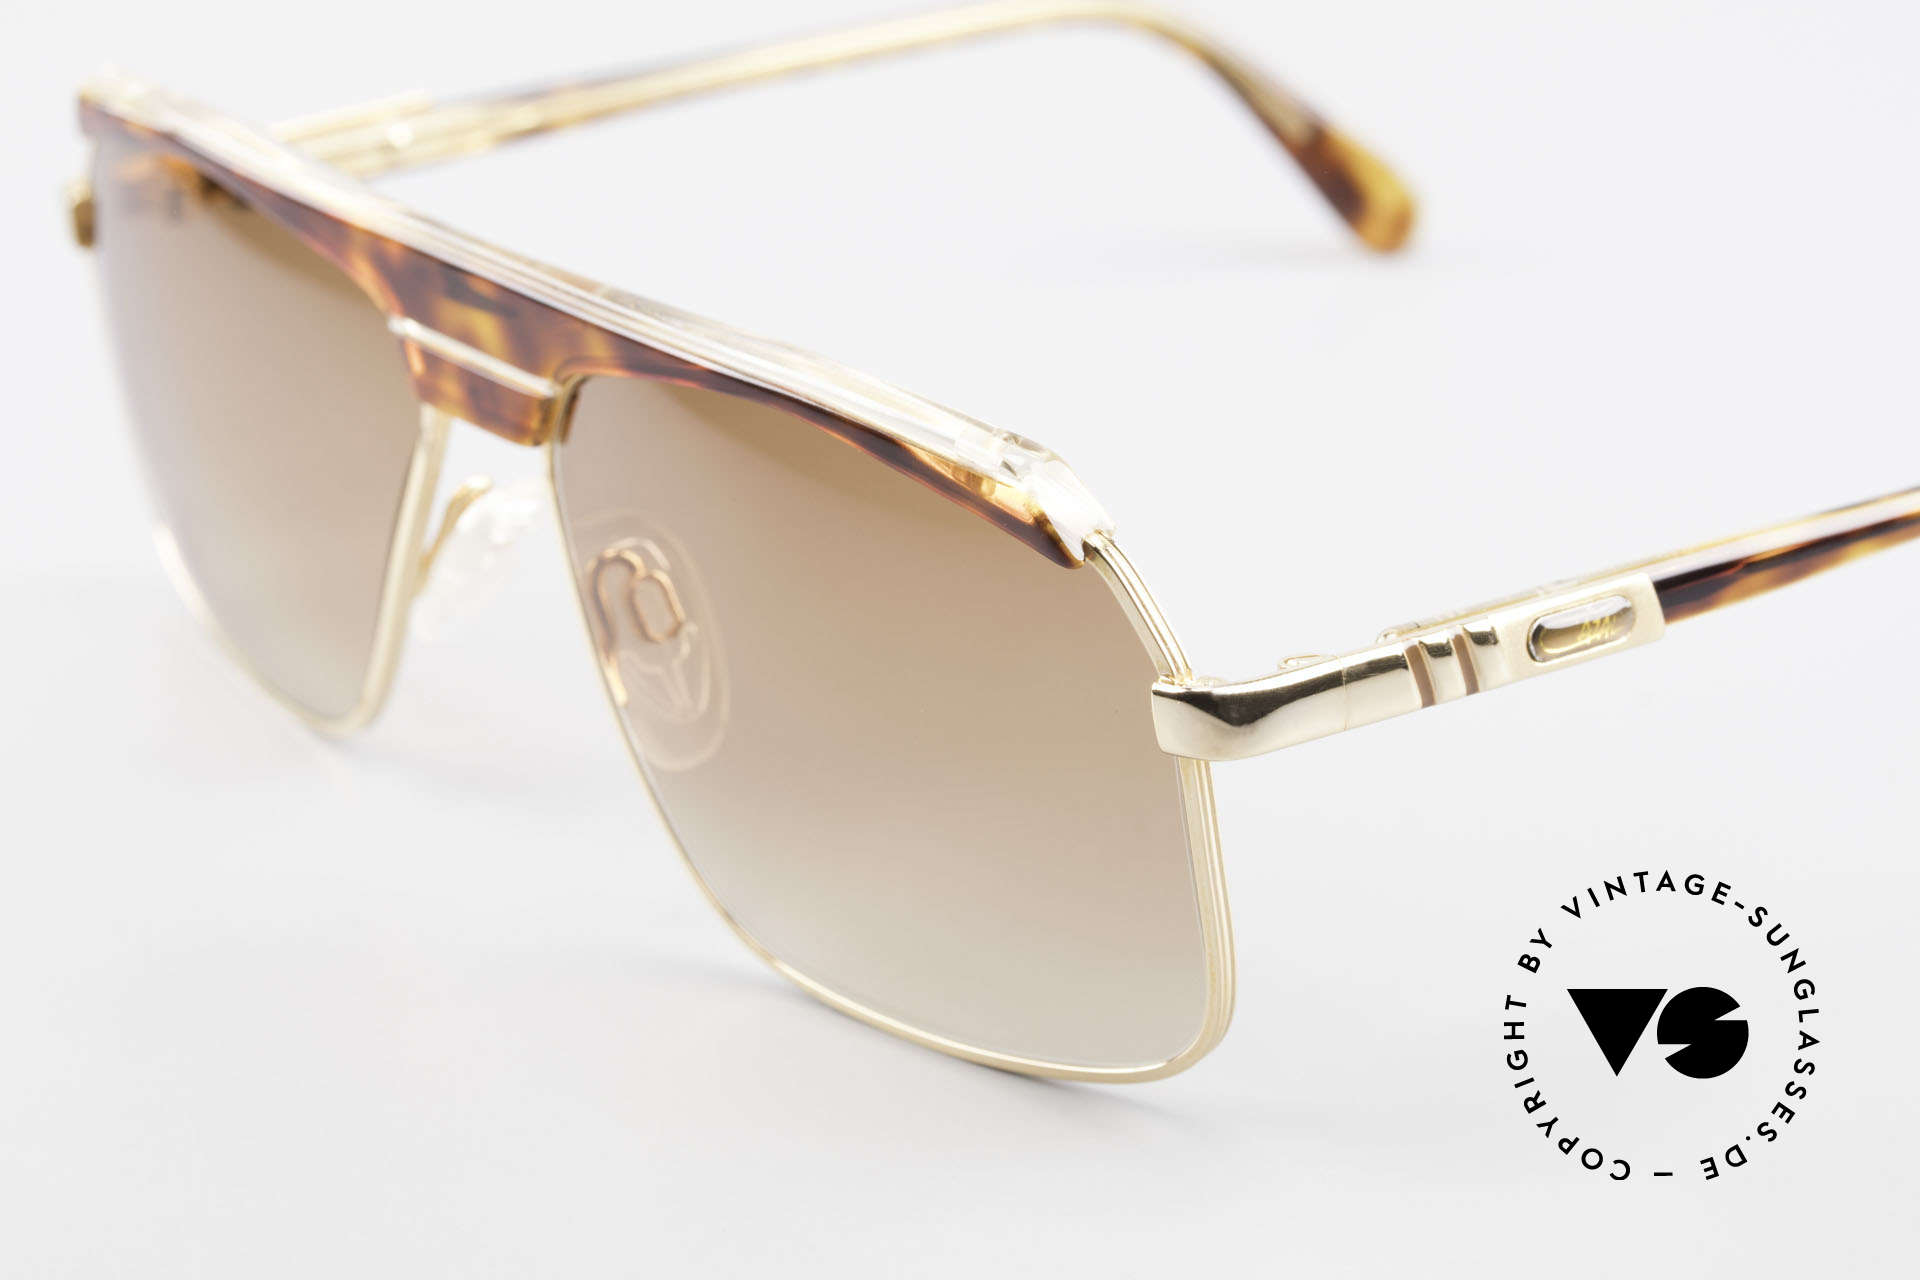 """Cazal 730 80's West Germany Sunglasses, authentic """"W. Germany"""" frame (collector's item), Made for Men"""